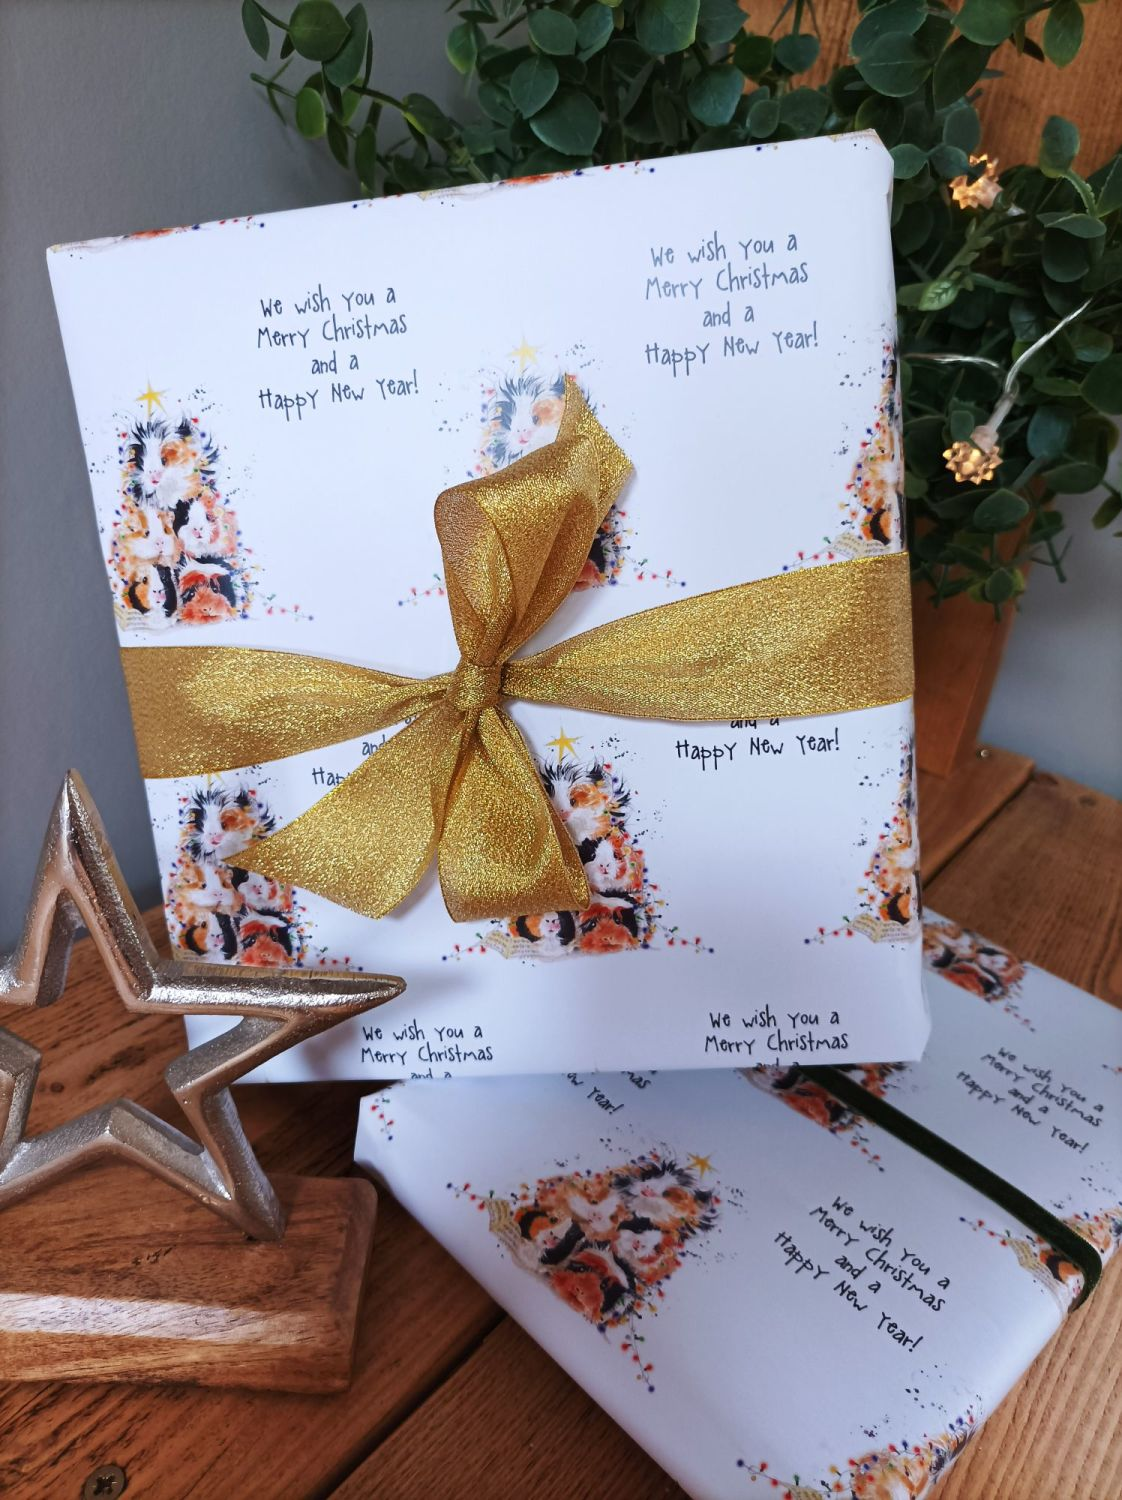 We wish you a Merry Christmas - Guinea pig - Wrapping paper